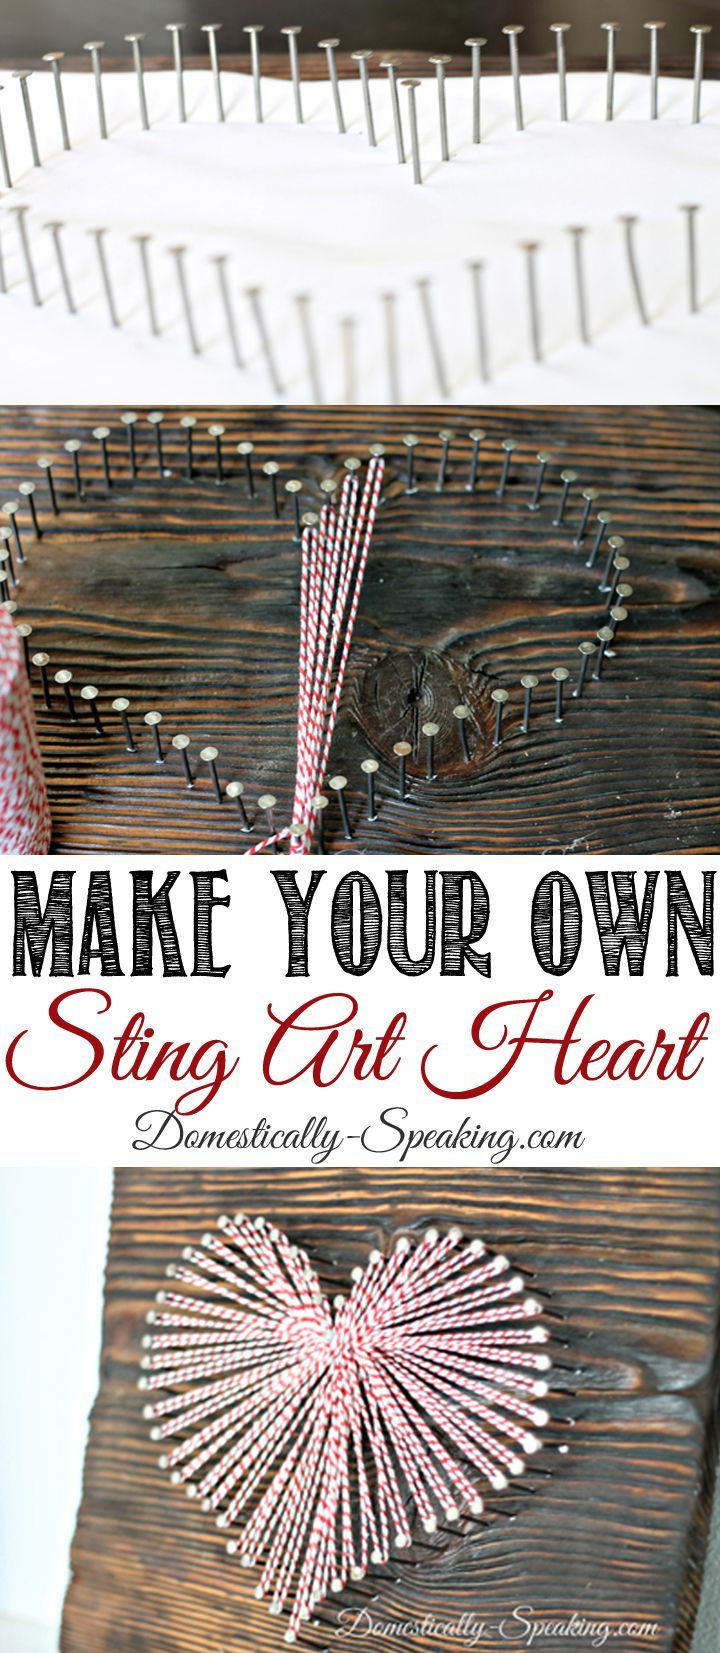 Make Your Own String Art Heart - a cute Valentine's craft that's an easy DIY project.